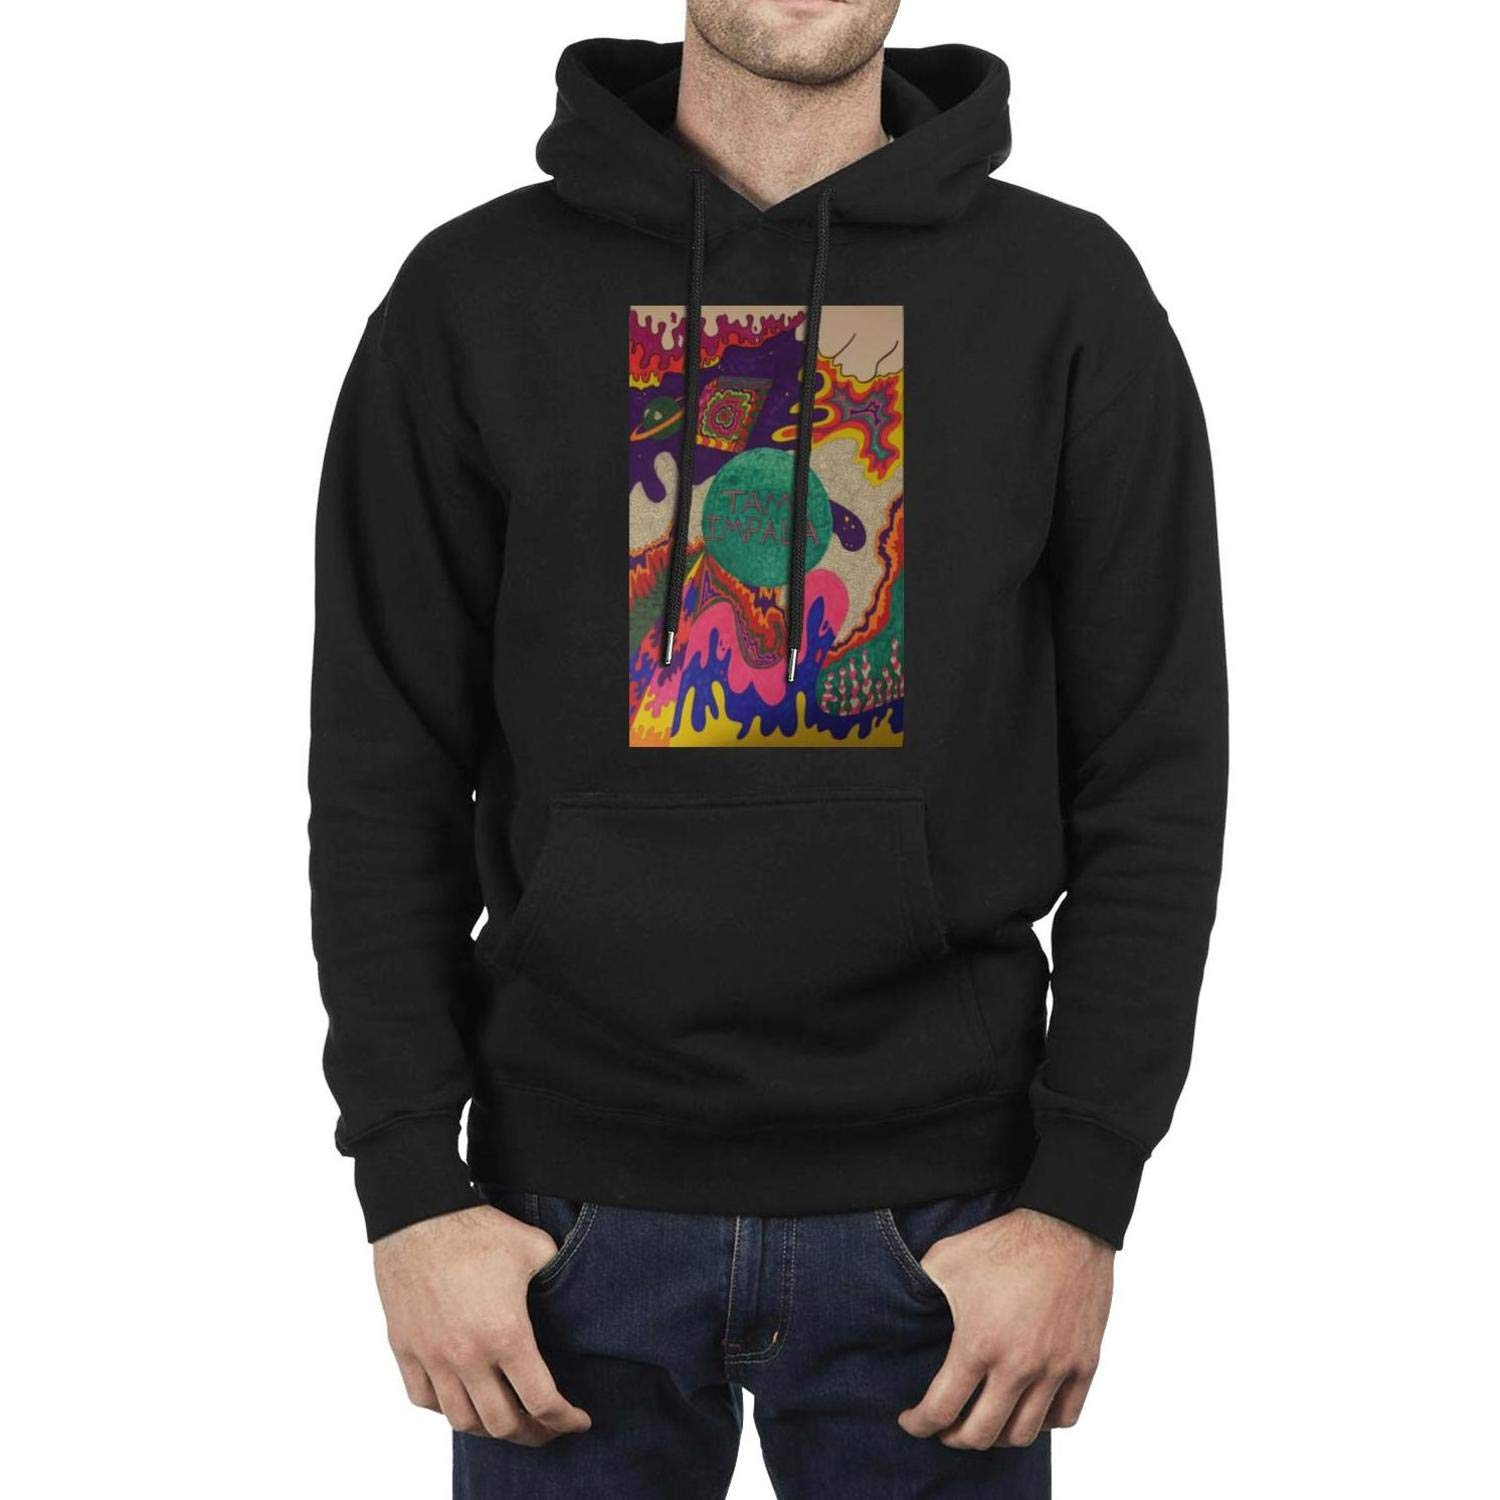 ZYALO Male Fleece Sweatshirt Lonerism-Tame-Impala- for Mens